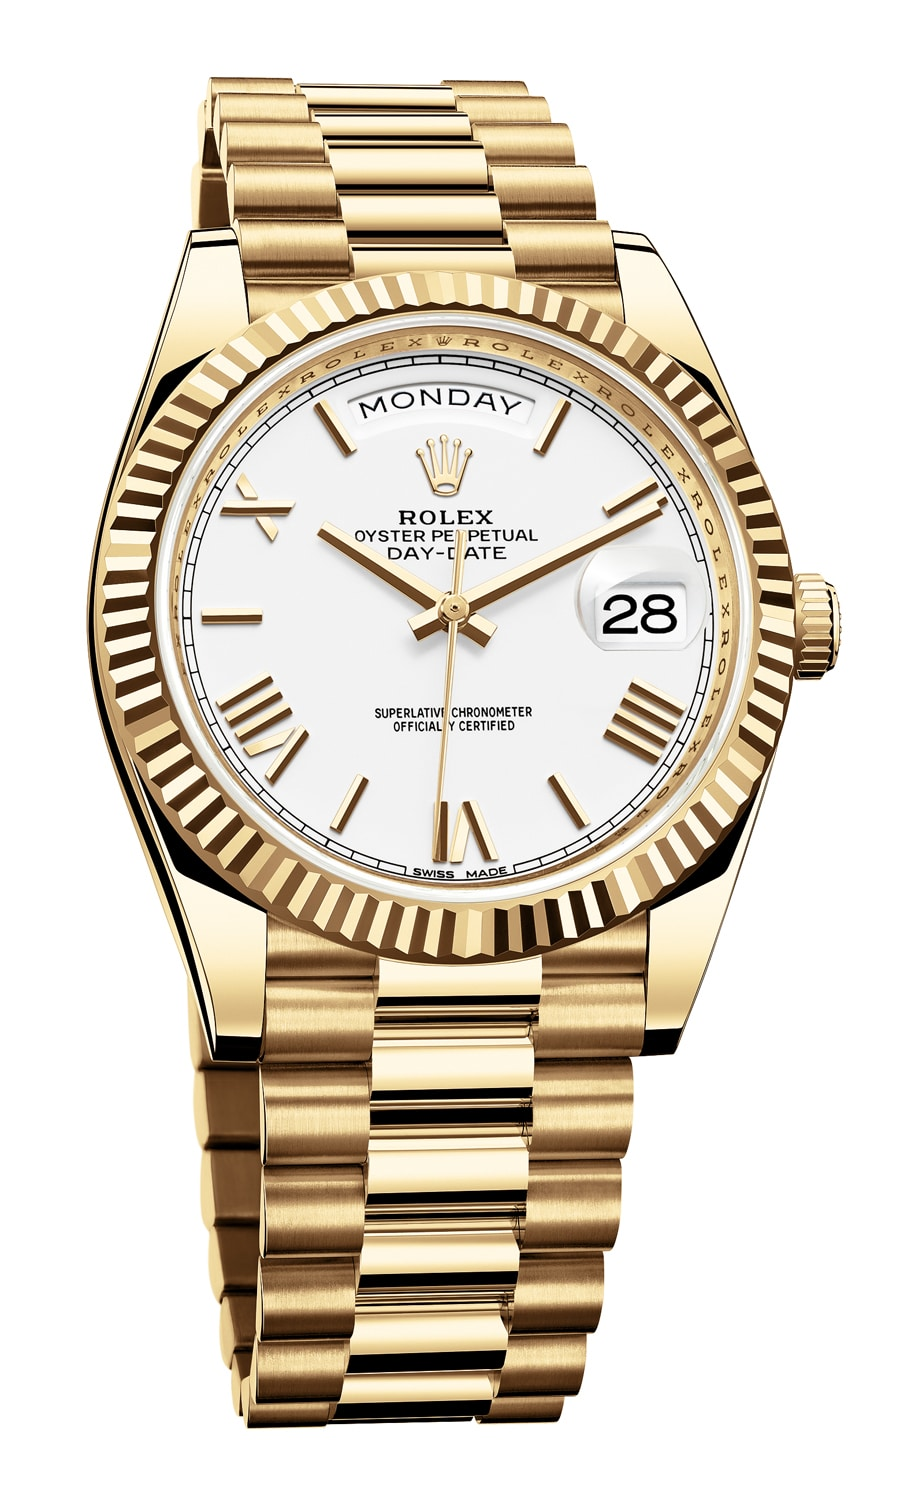 Rolex: Oyster Perpetual Day-Date 40 in Gelbgold